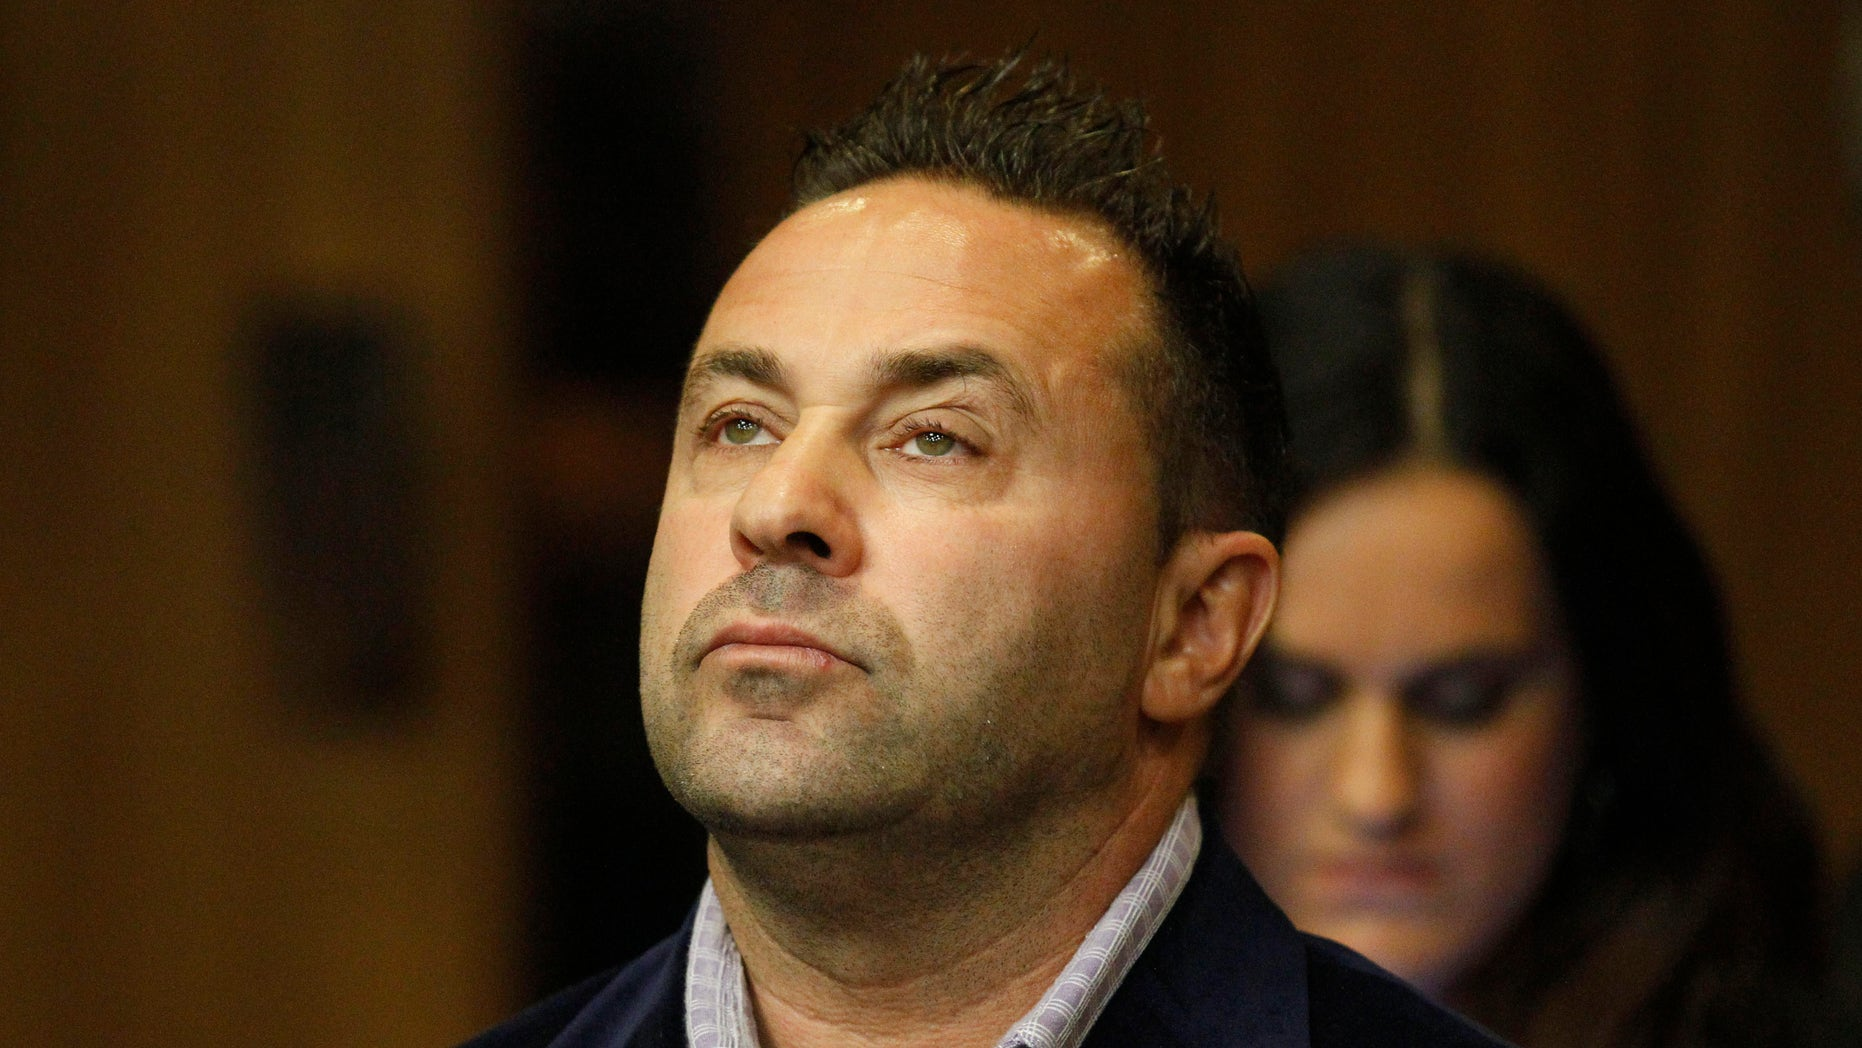 """October 15, 2014. Giuseppe """"Joe"""" Giudice, from the television show """"Real Housewives of New Jersey"""", stands during a hearing in the Passaic County Courthouse, in Paterson, N.J. Giudice accepted a plea deal Wednesday after initially telling the judge through his attorney that he would go to trial on charges of unlawful use of an ID and impersonation. Under the deal, Giudice will be sentenced to 18 months in prison, to be served concurrently with his 41-month federal sentence."""